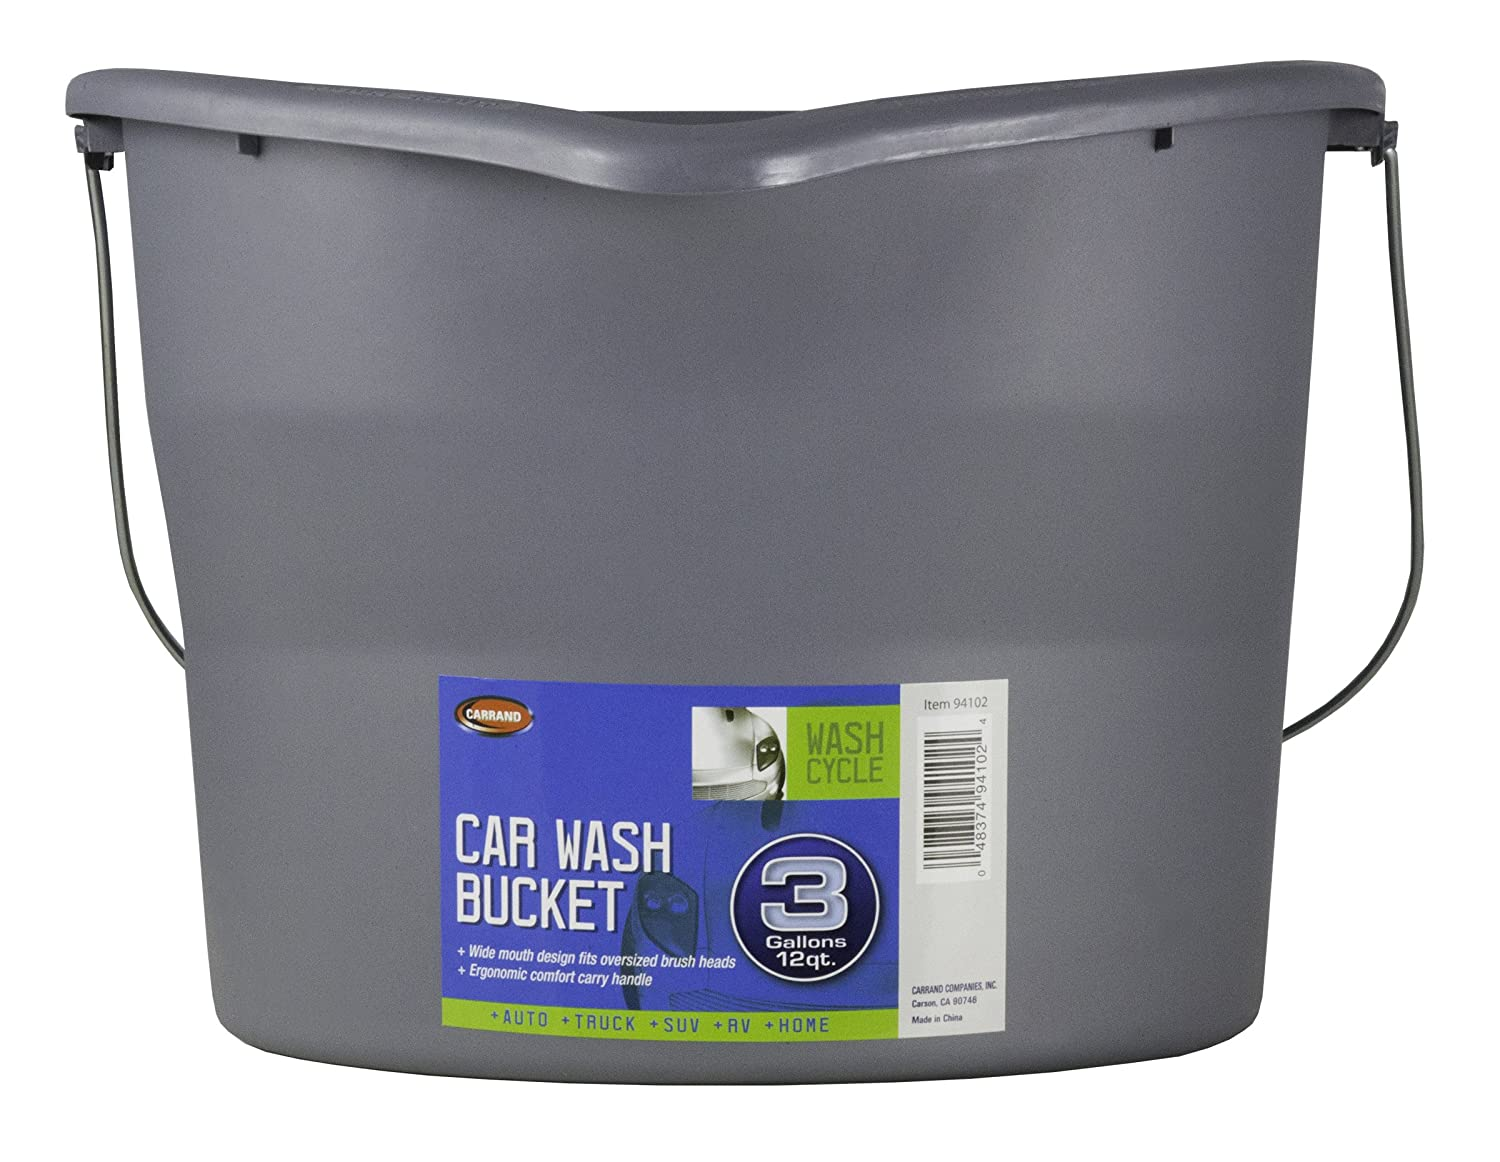 Carrand 94102 Car Wash Bucket - 3 Gallon Capacity